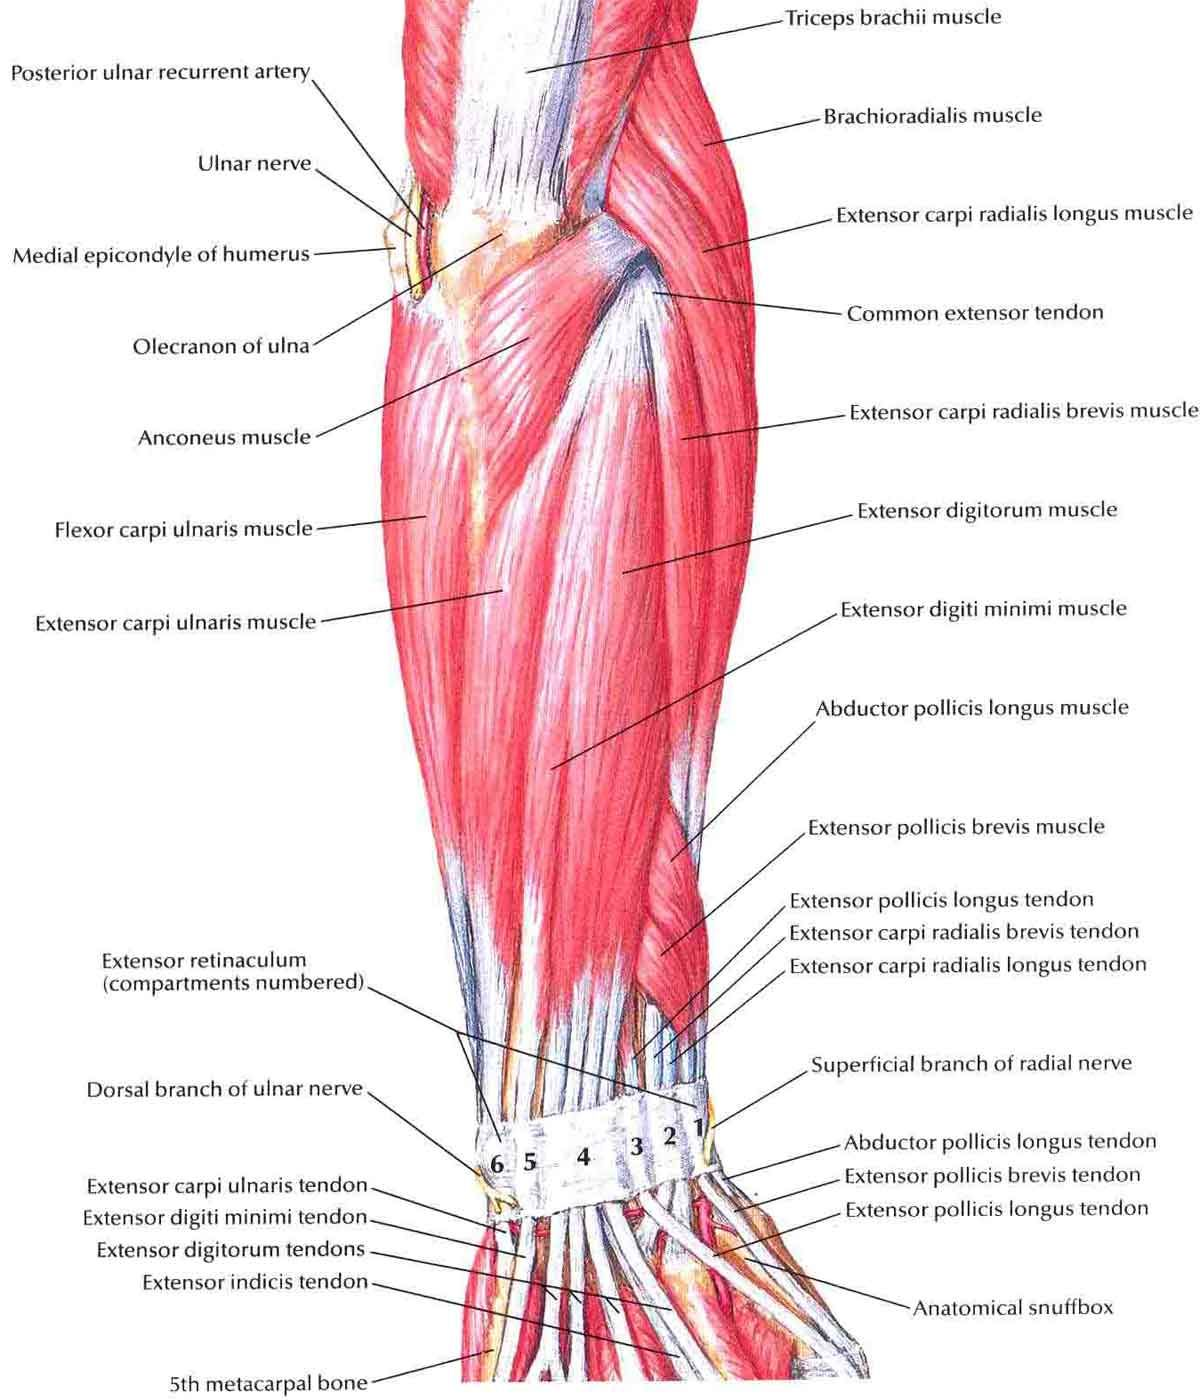 diagram extensor tendons forearm wiring diagram forward forearm tendon diagram [ 1200 x 1400 Pixel ]